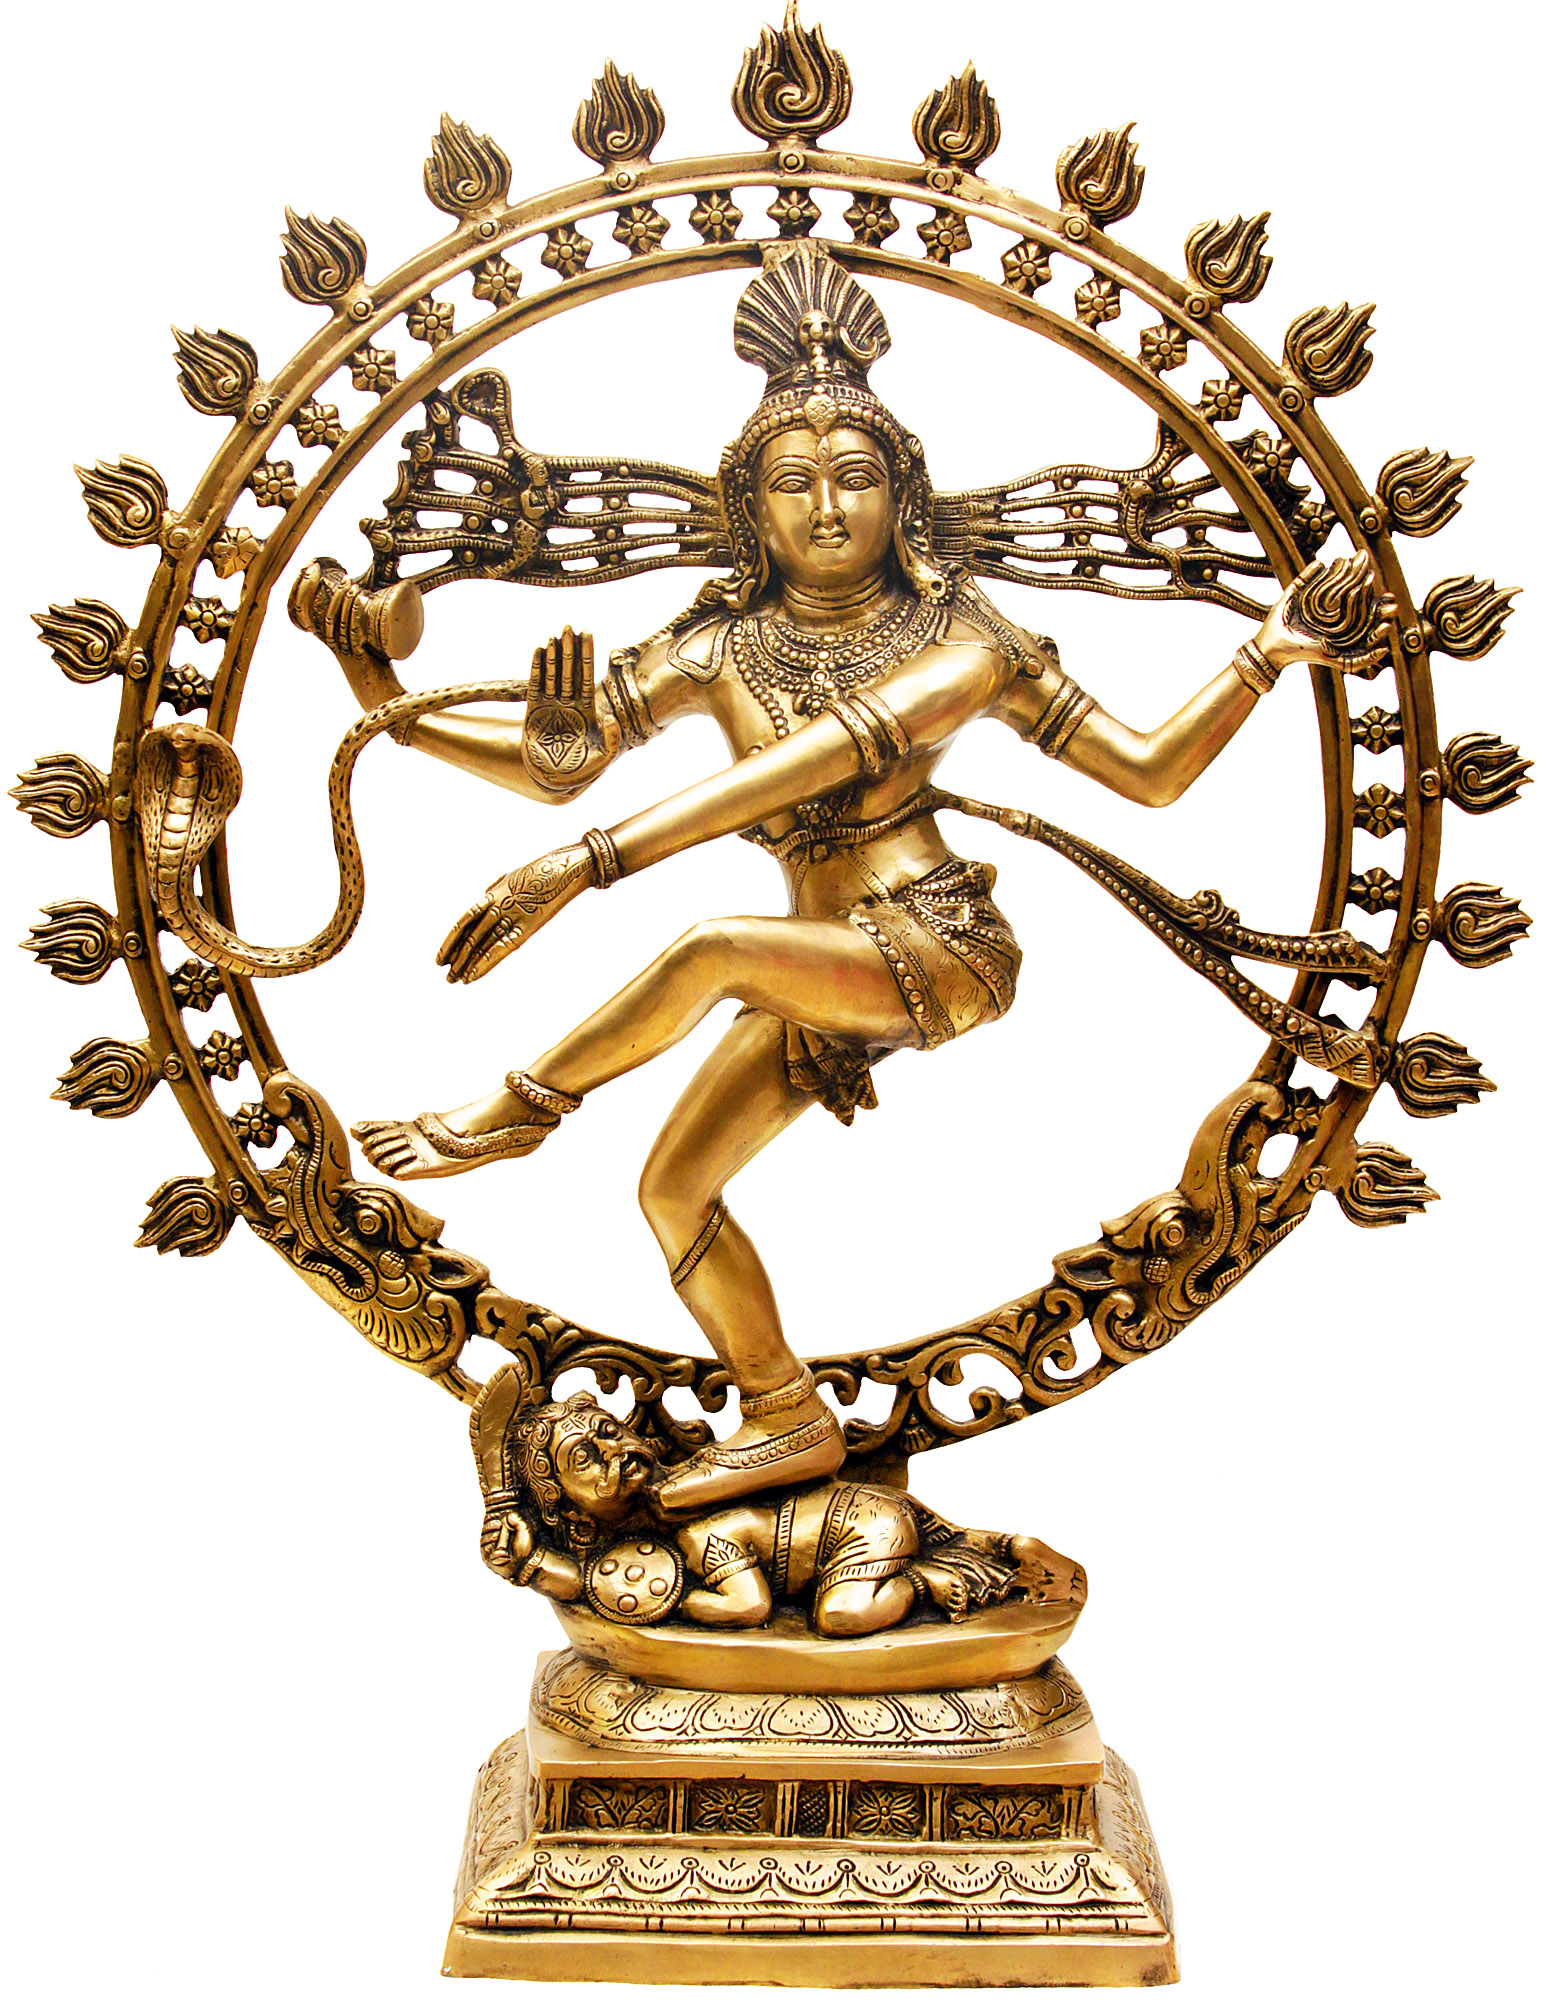 a depiction of shiva nataraja a sculpture of dancing god A depiction of the god shiva as the cosmic dancer who performs his divine dance to destroy a weary universe bronze dancing shiva as nataraja sculpture 21 see.